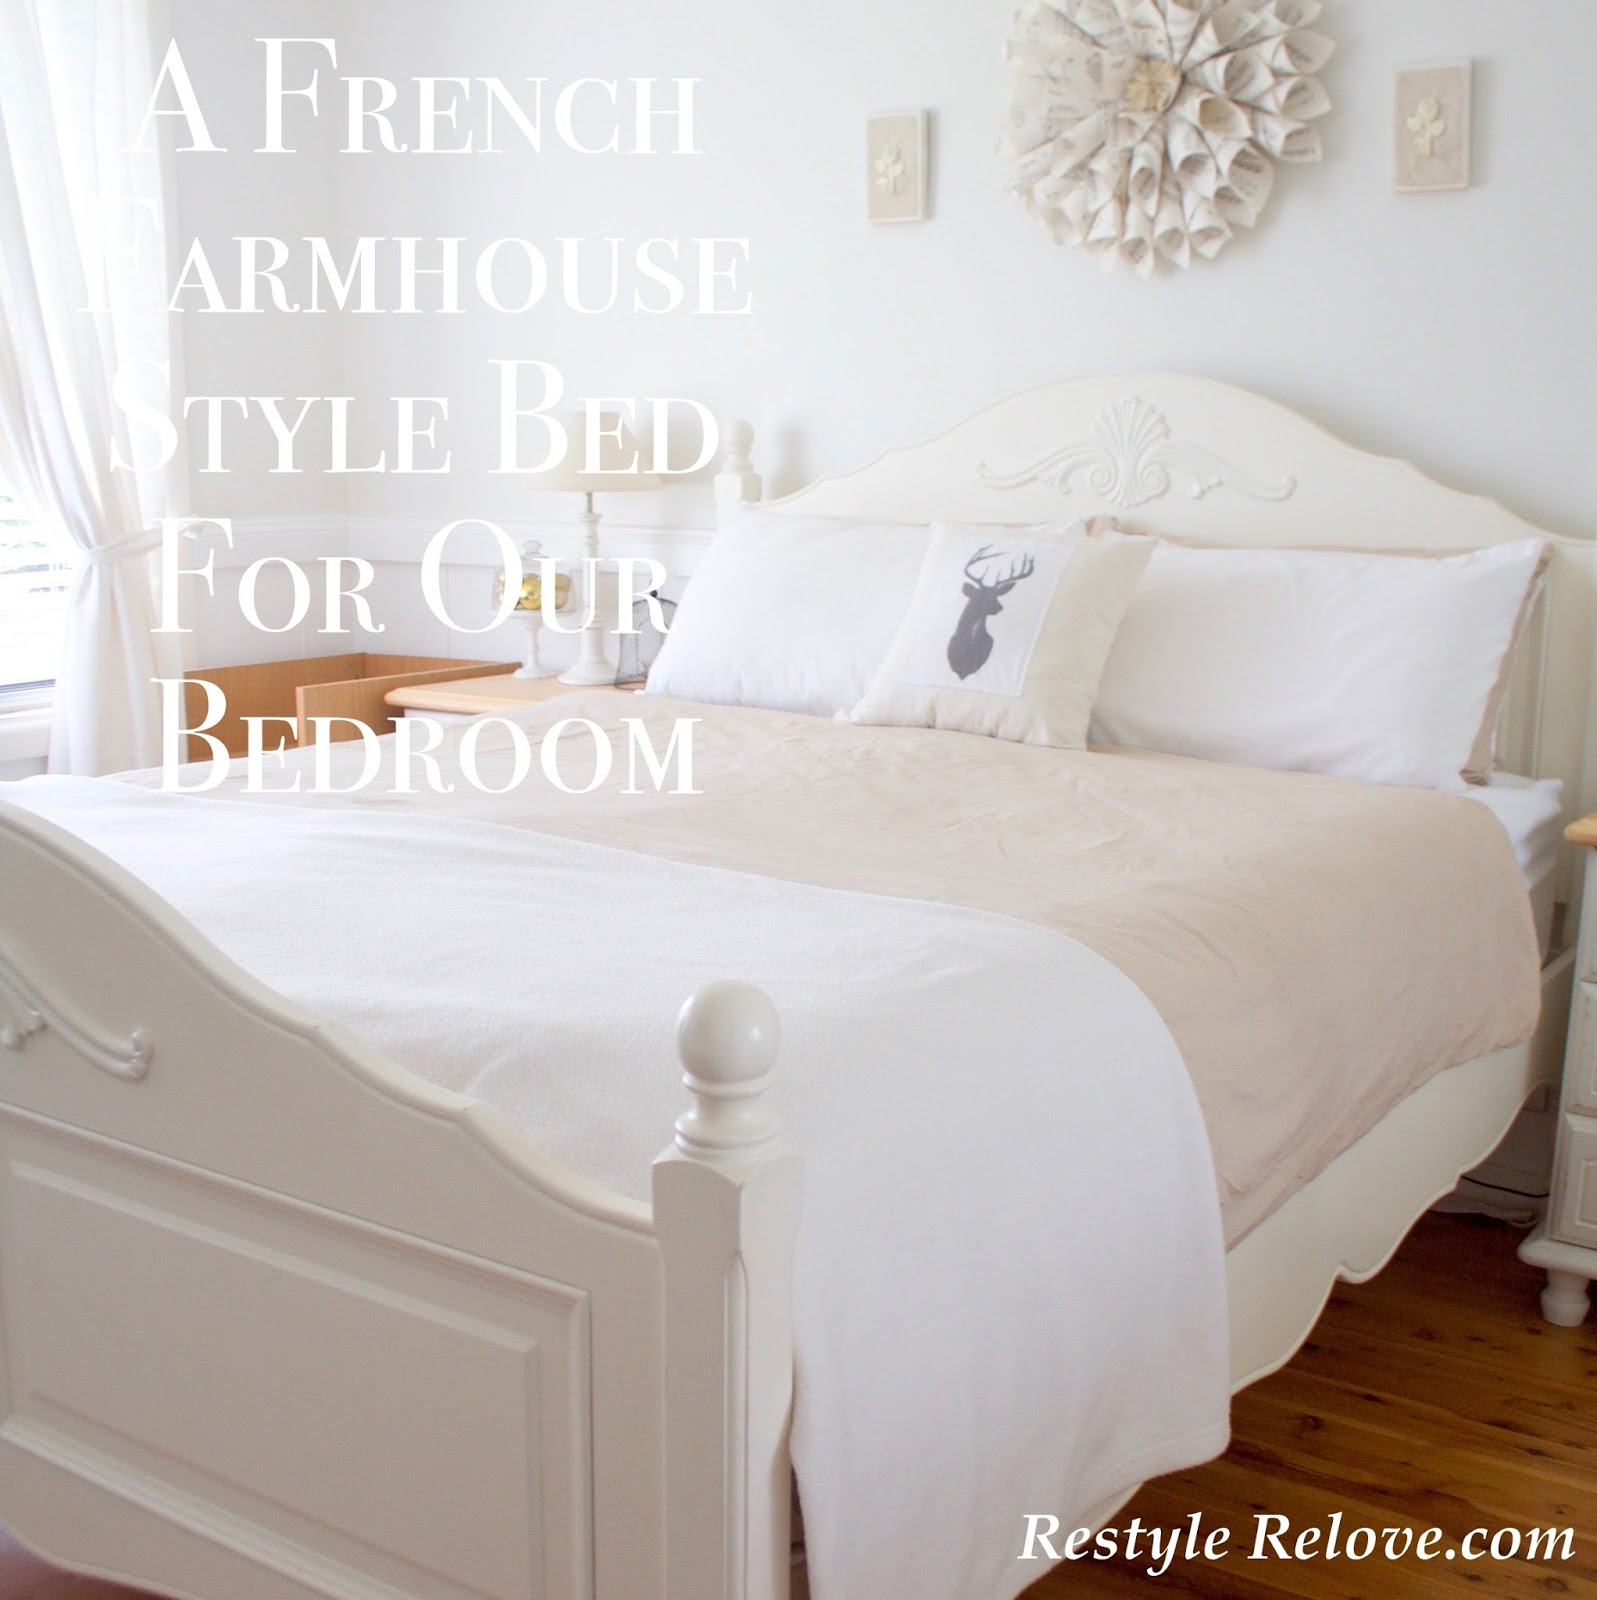 A French Farmhouse Style Bed For Our Bedroom And A Splash